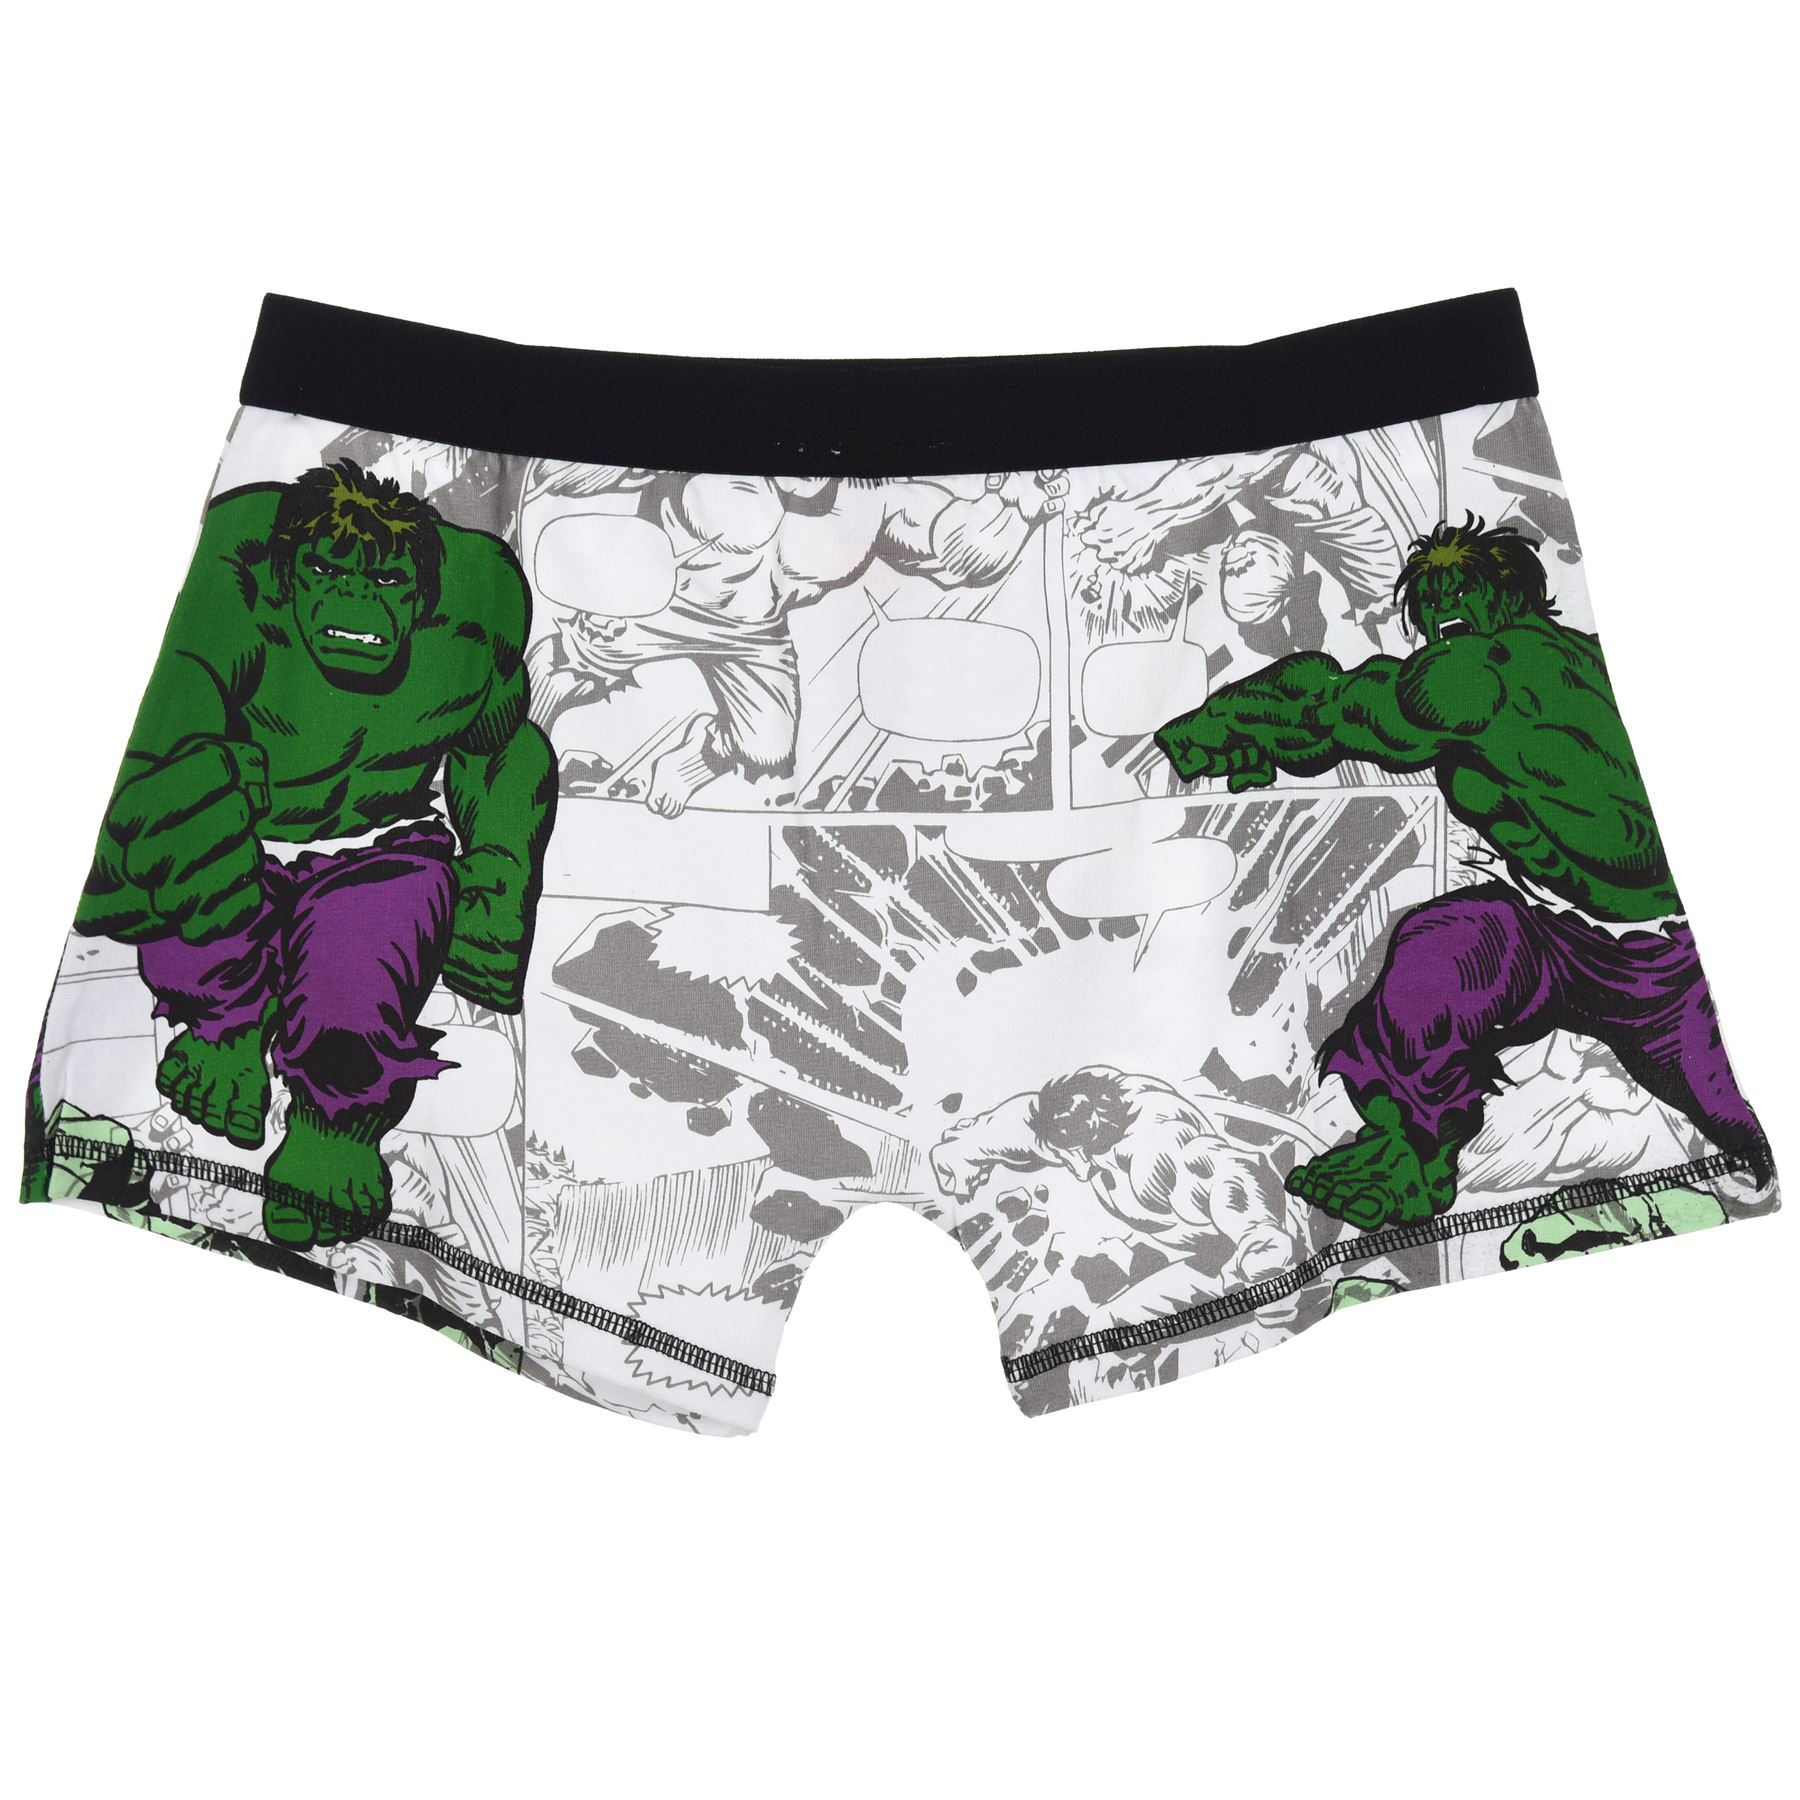 Mens-Official-Character-Trunks-Boxer-Shorts-Boxers-Underwear-2-Pack-Size-S-XL thumbnail 26